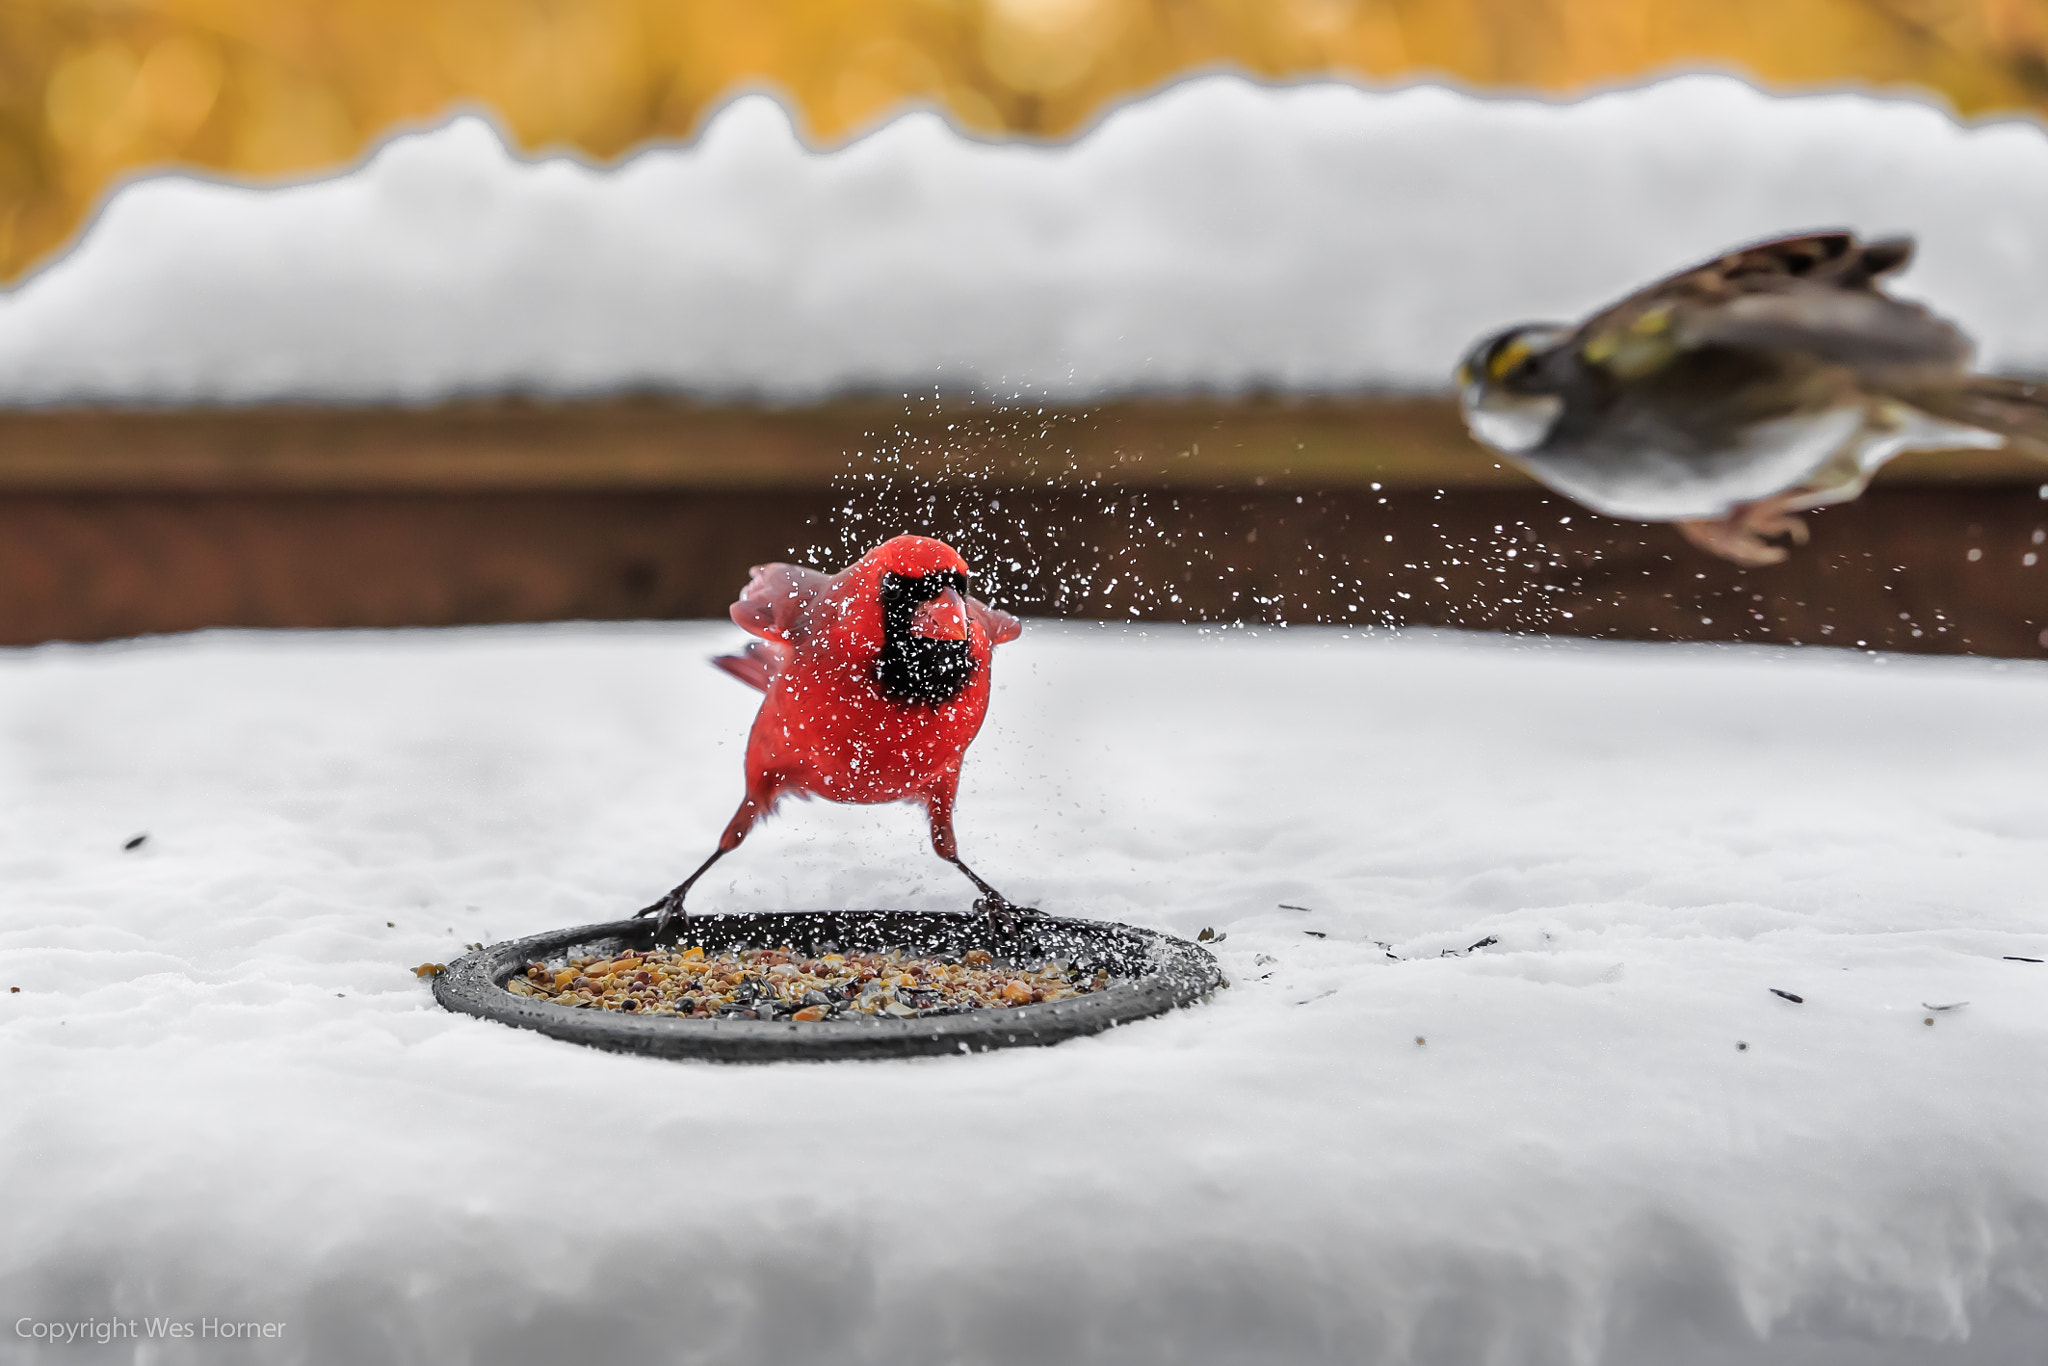 Photograph Fly The Coop by Wes Horner on 500px